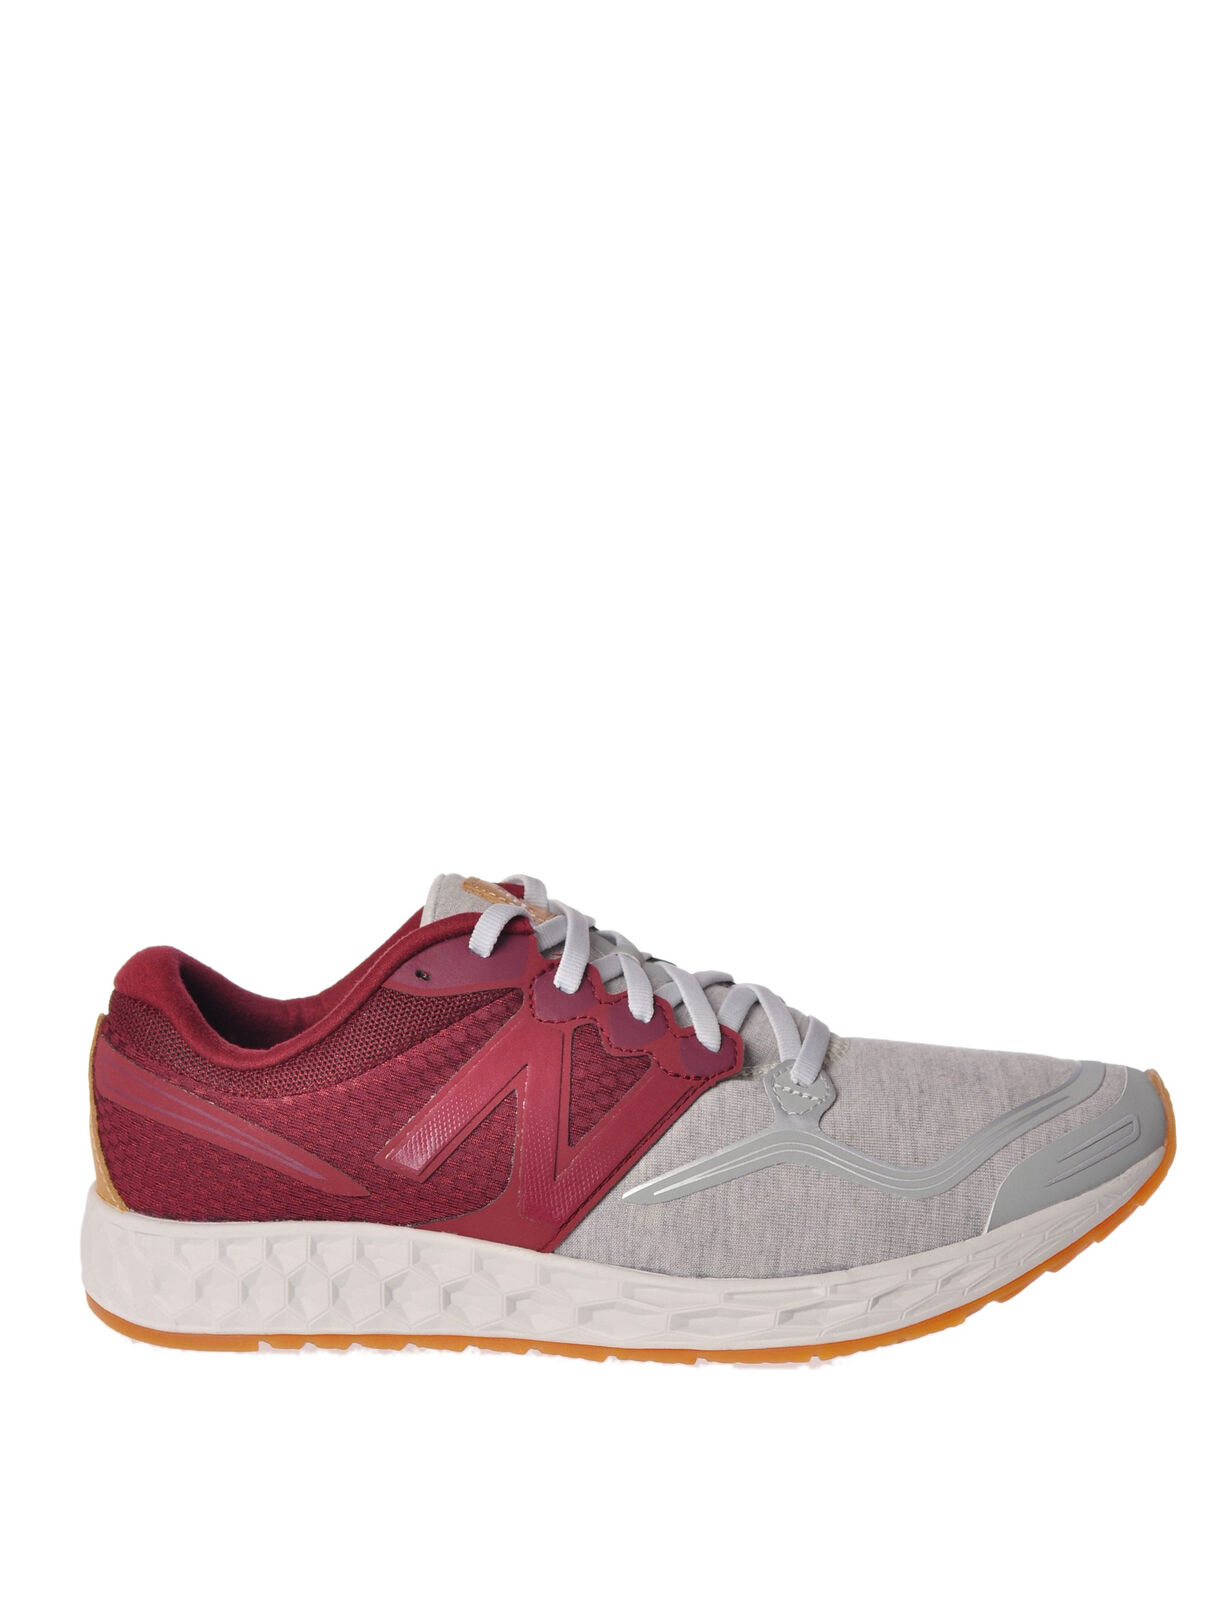 New Balance - chaussures-baskets low - Woman Woman Woman - rouge - 453515C184456 f578f2